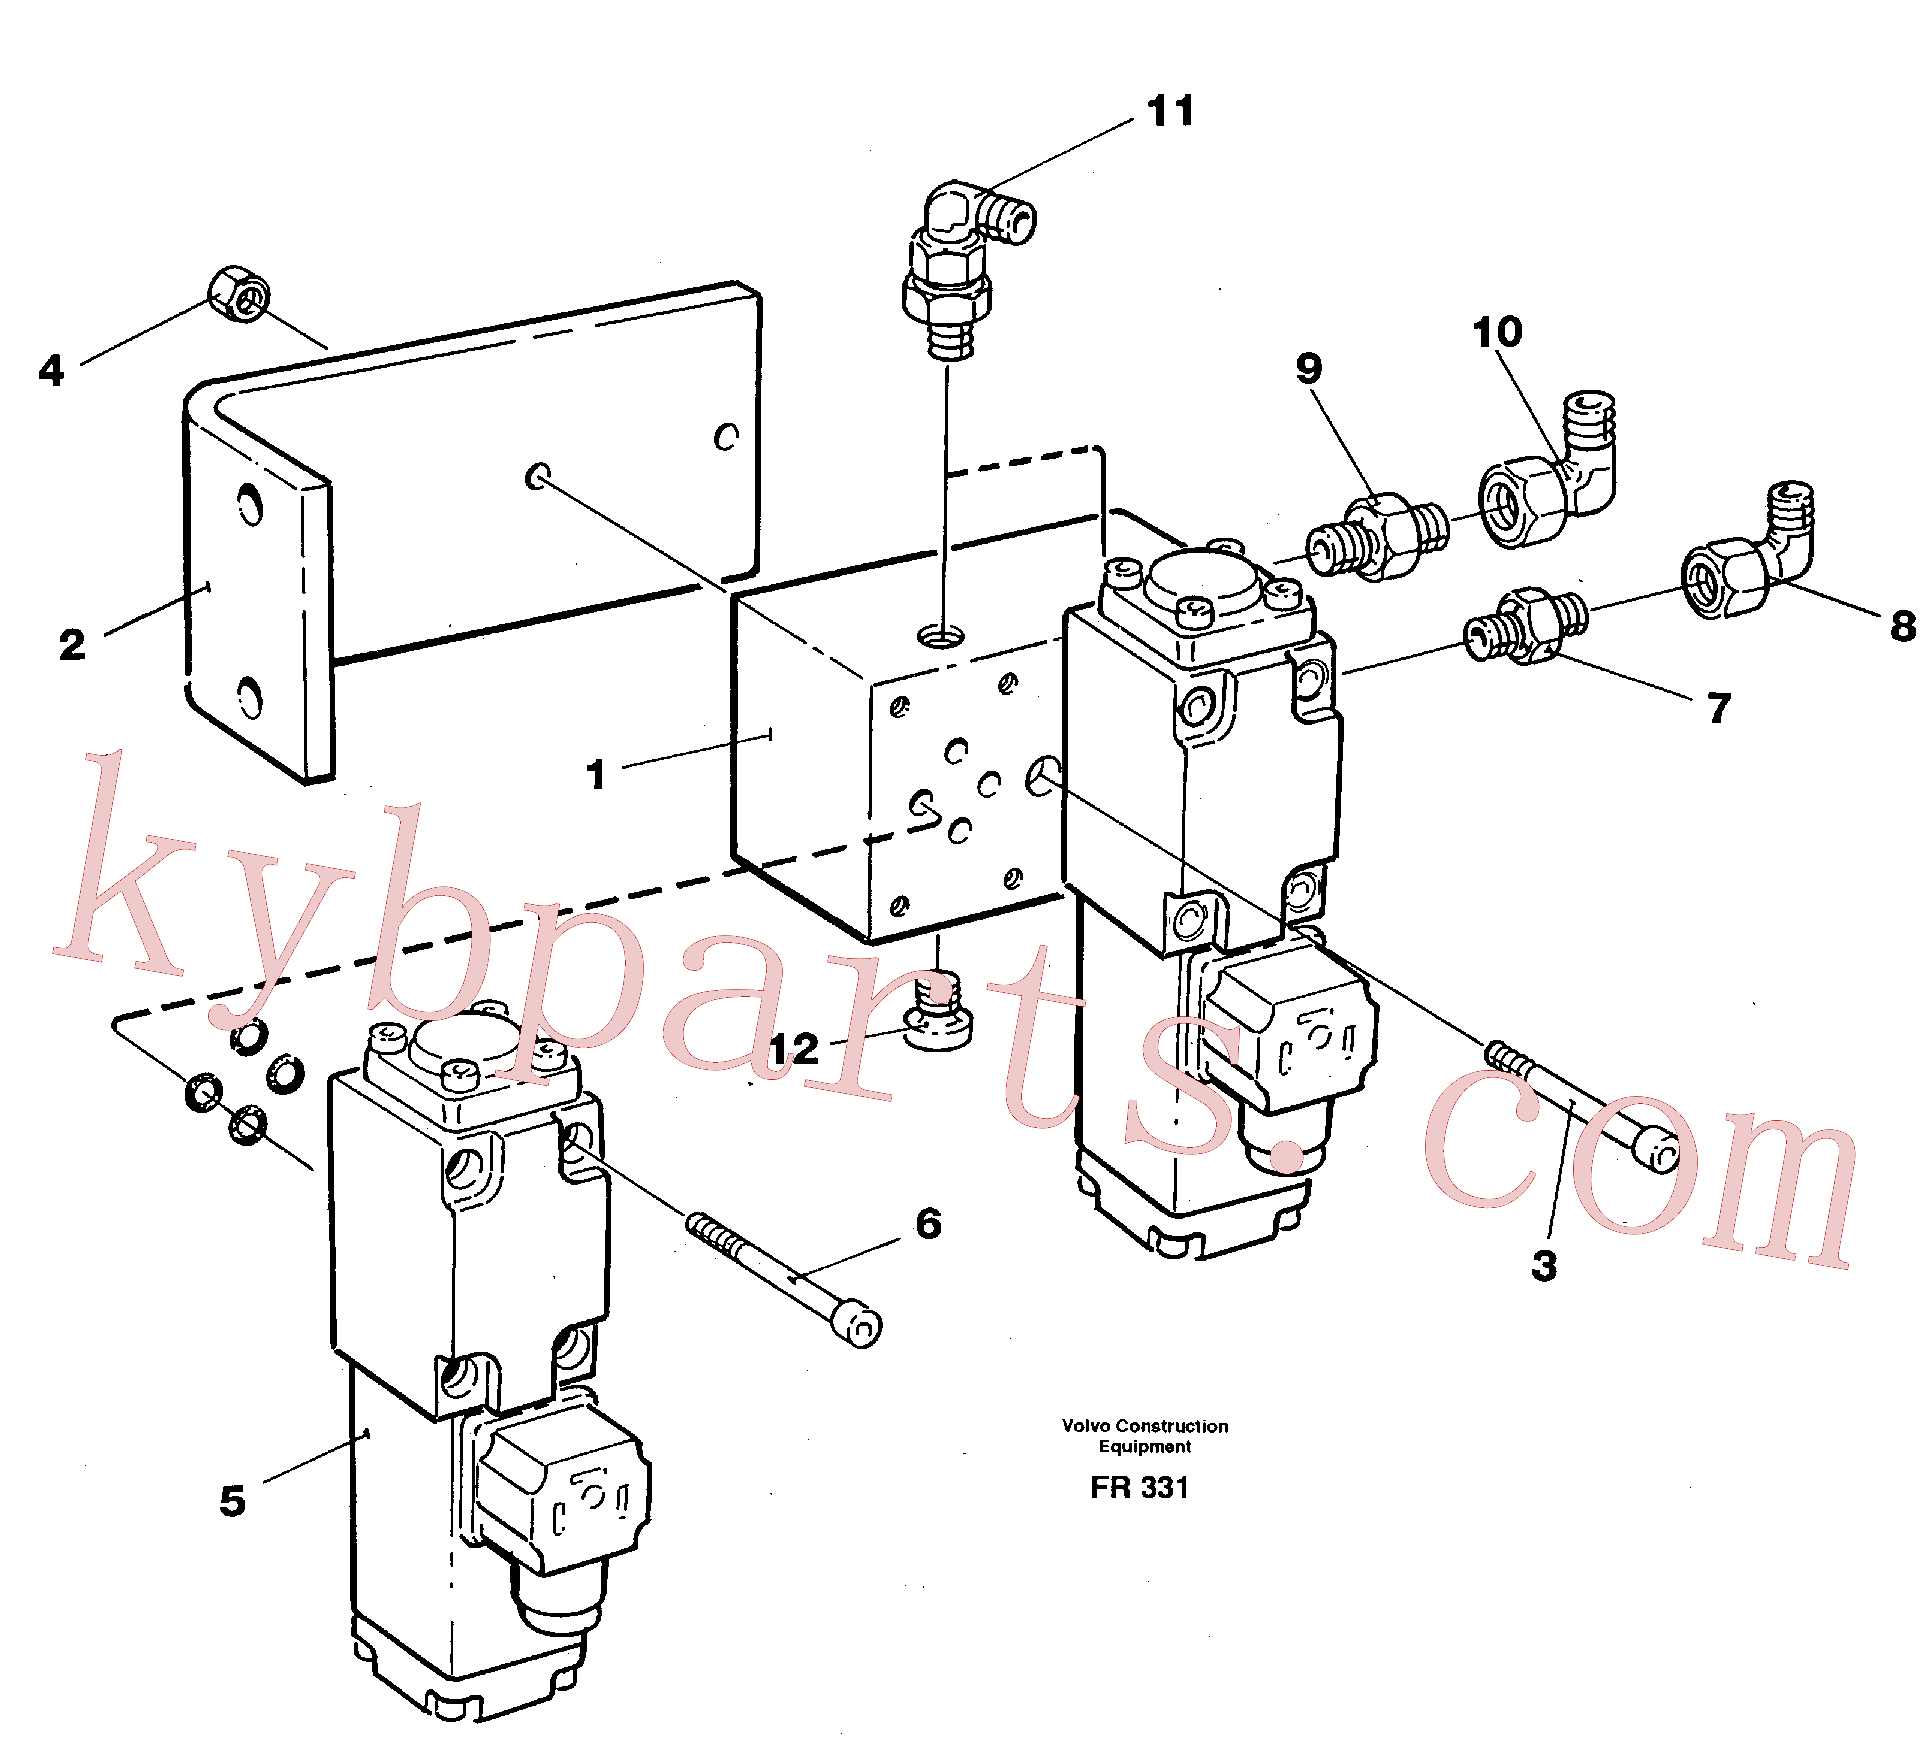 VOE14211900 for Volvo Electric valve block(FR331 assembly)